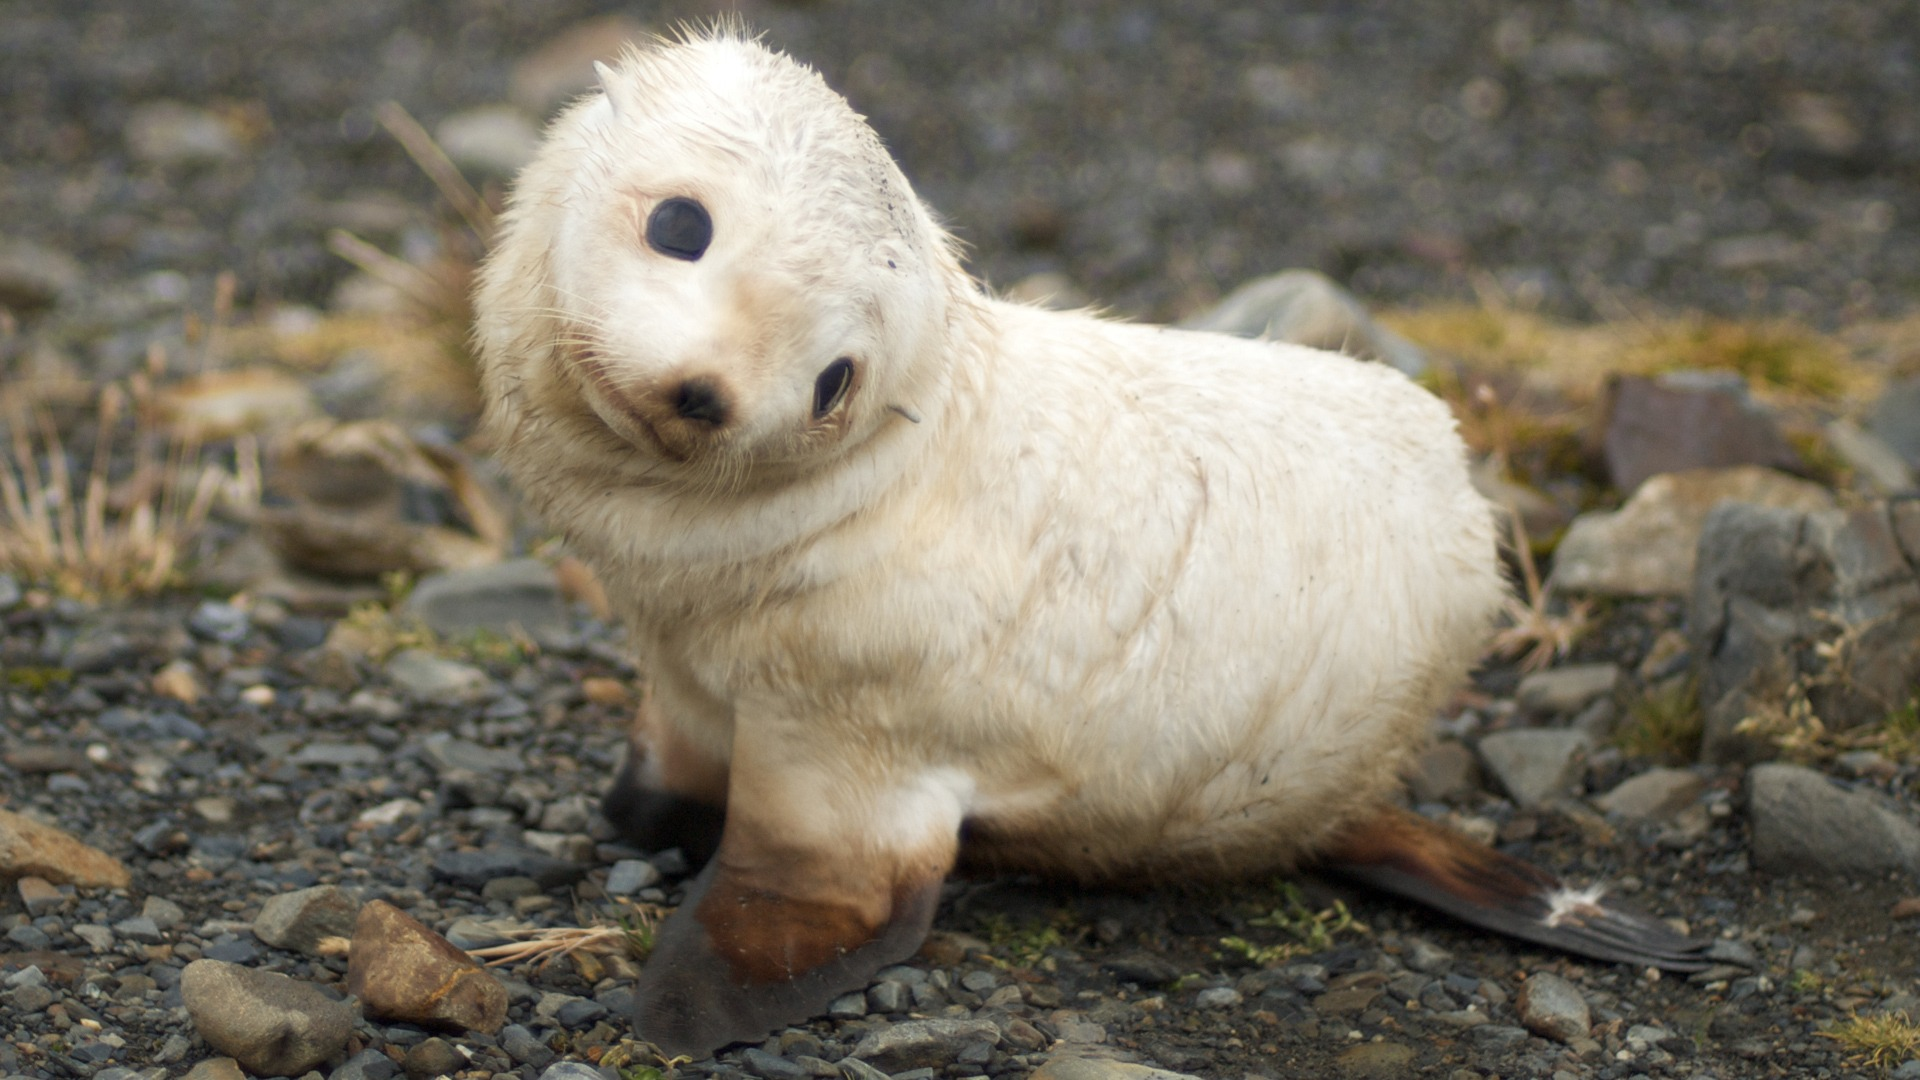 Baby Seal Wallpaper Seals Animals Wallpapers in jpg format for free     Baby Seal Wallpaper Seals Animals Wallpapers